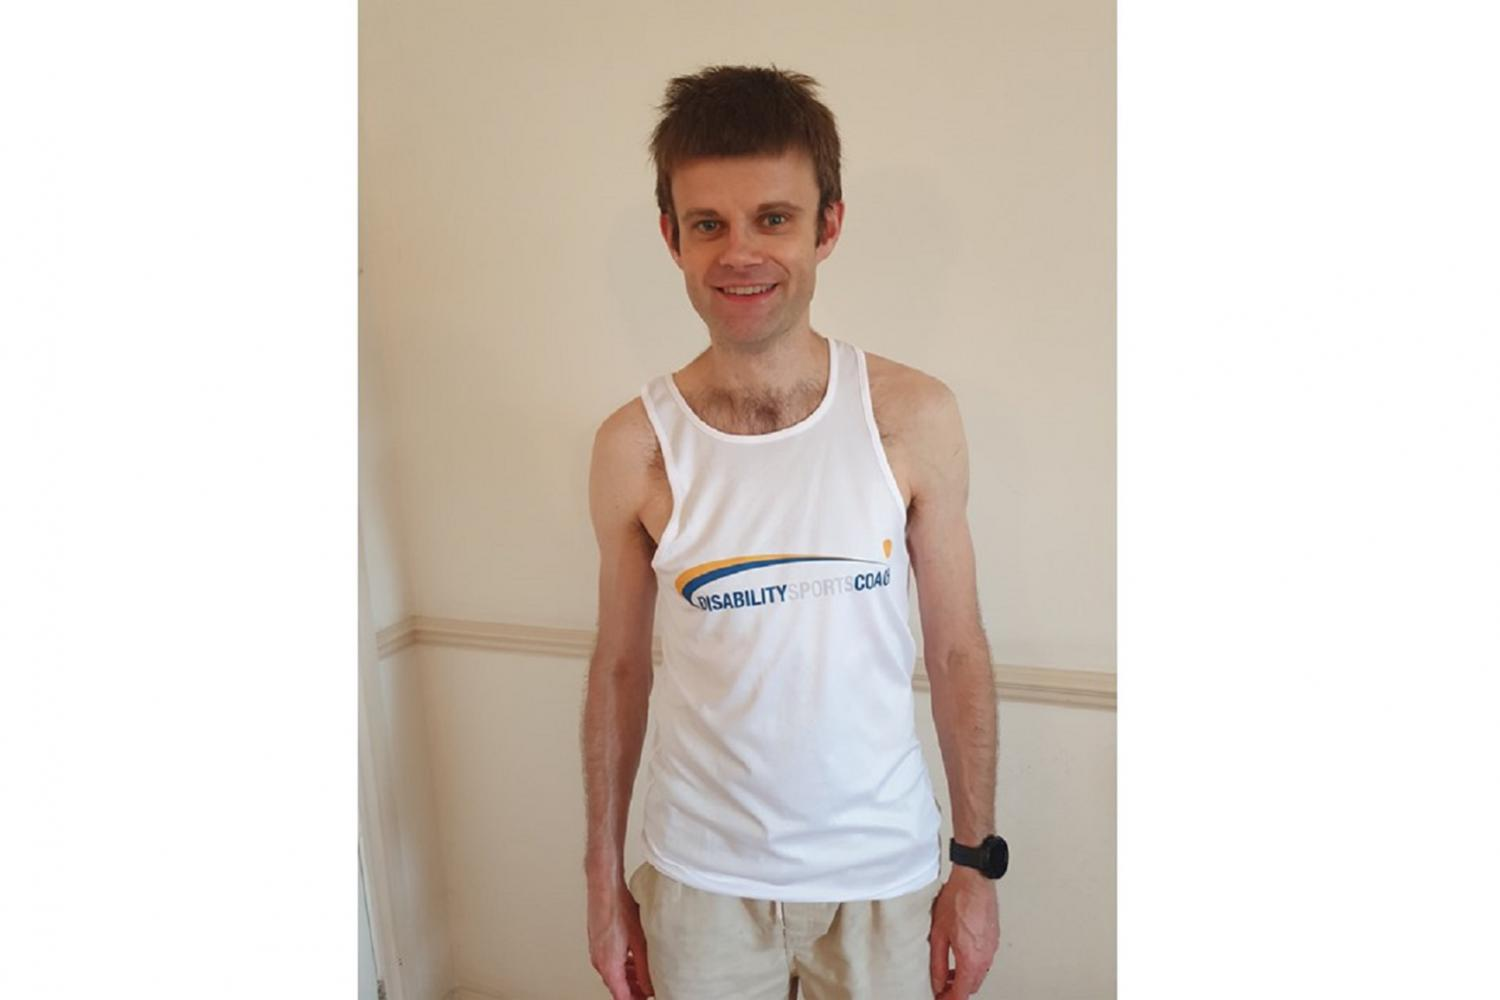 Sam Vardy smiling at the camera while wearing a running vest with the logo of Disability Sports Coach